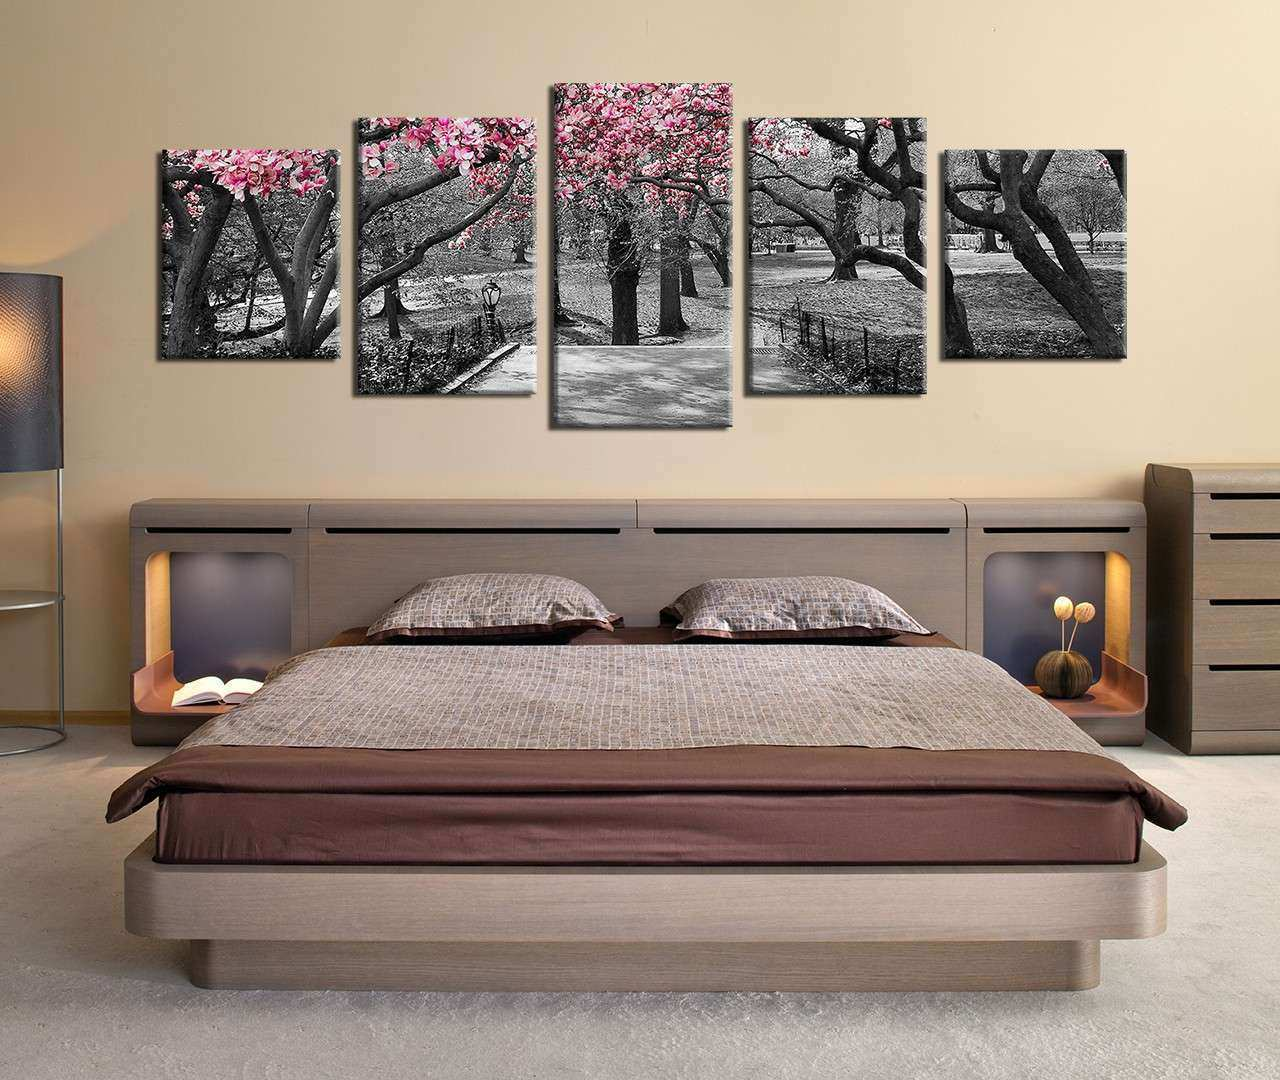 Bedroom Canvas Wall Art Home Design